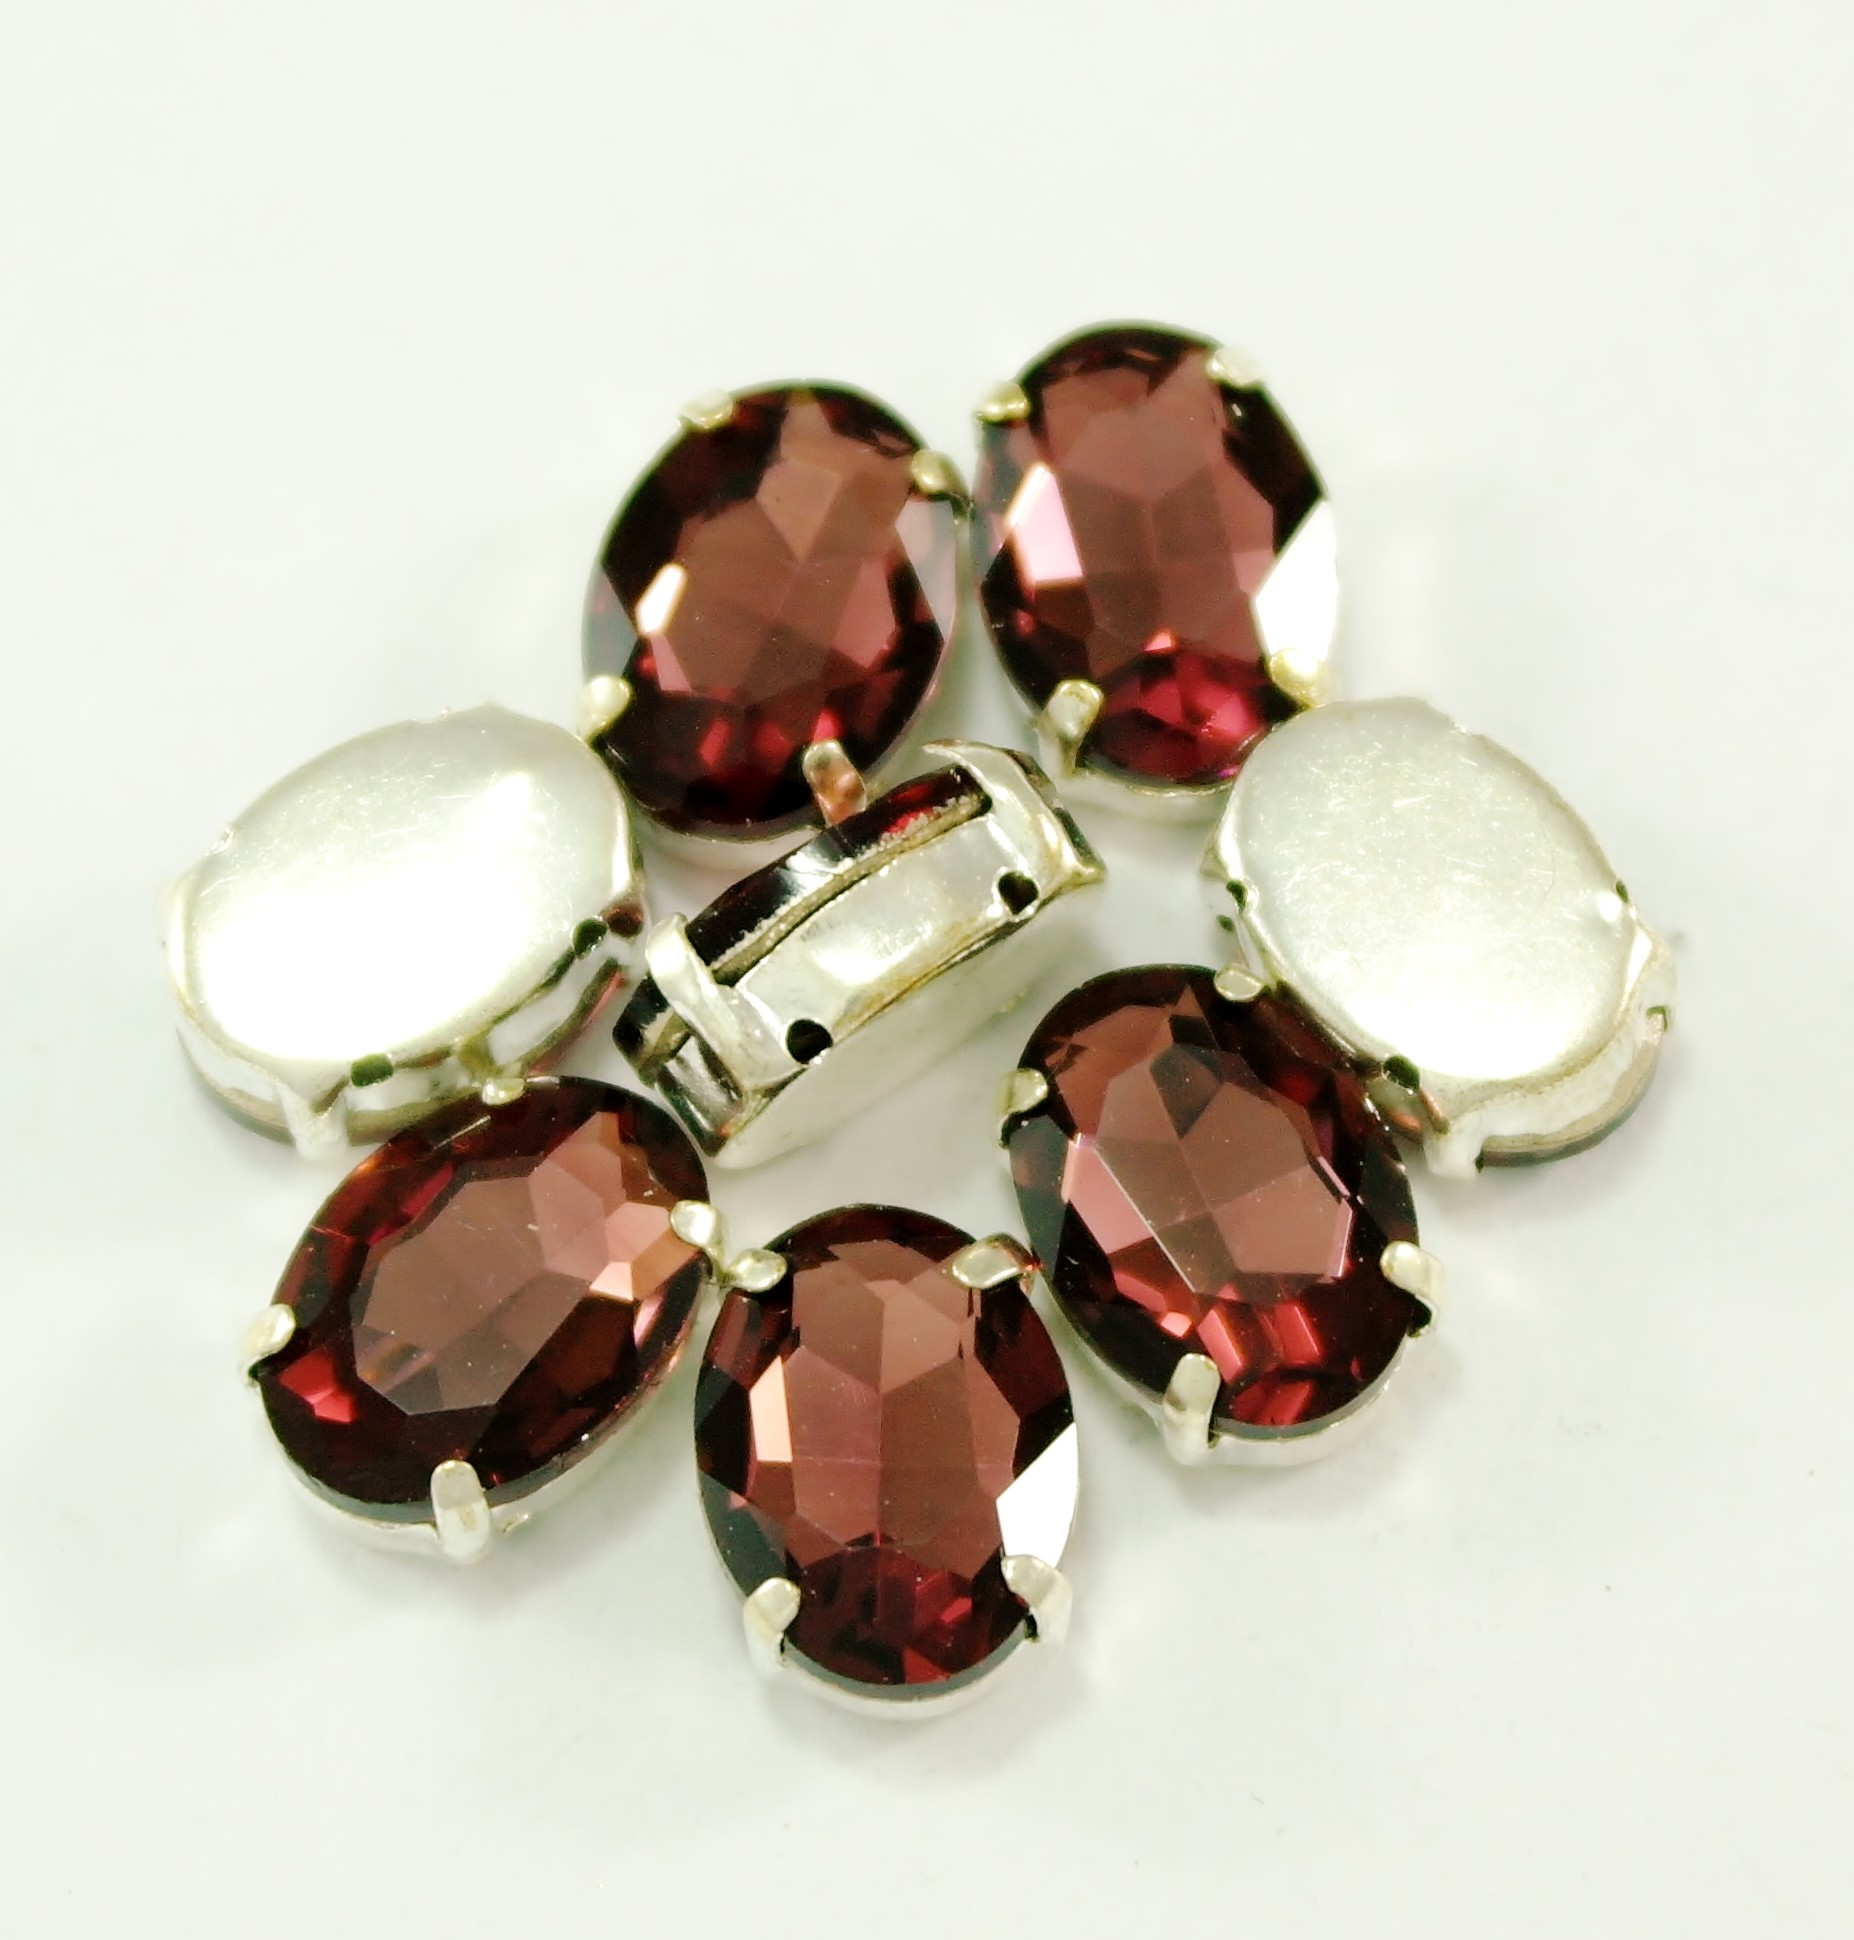 GLASS BEADS - BURGUNDY OVAL (O17)